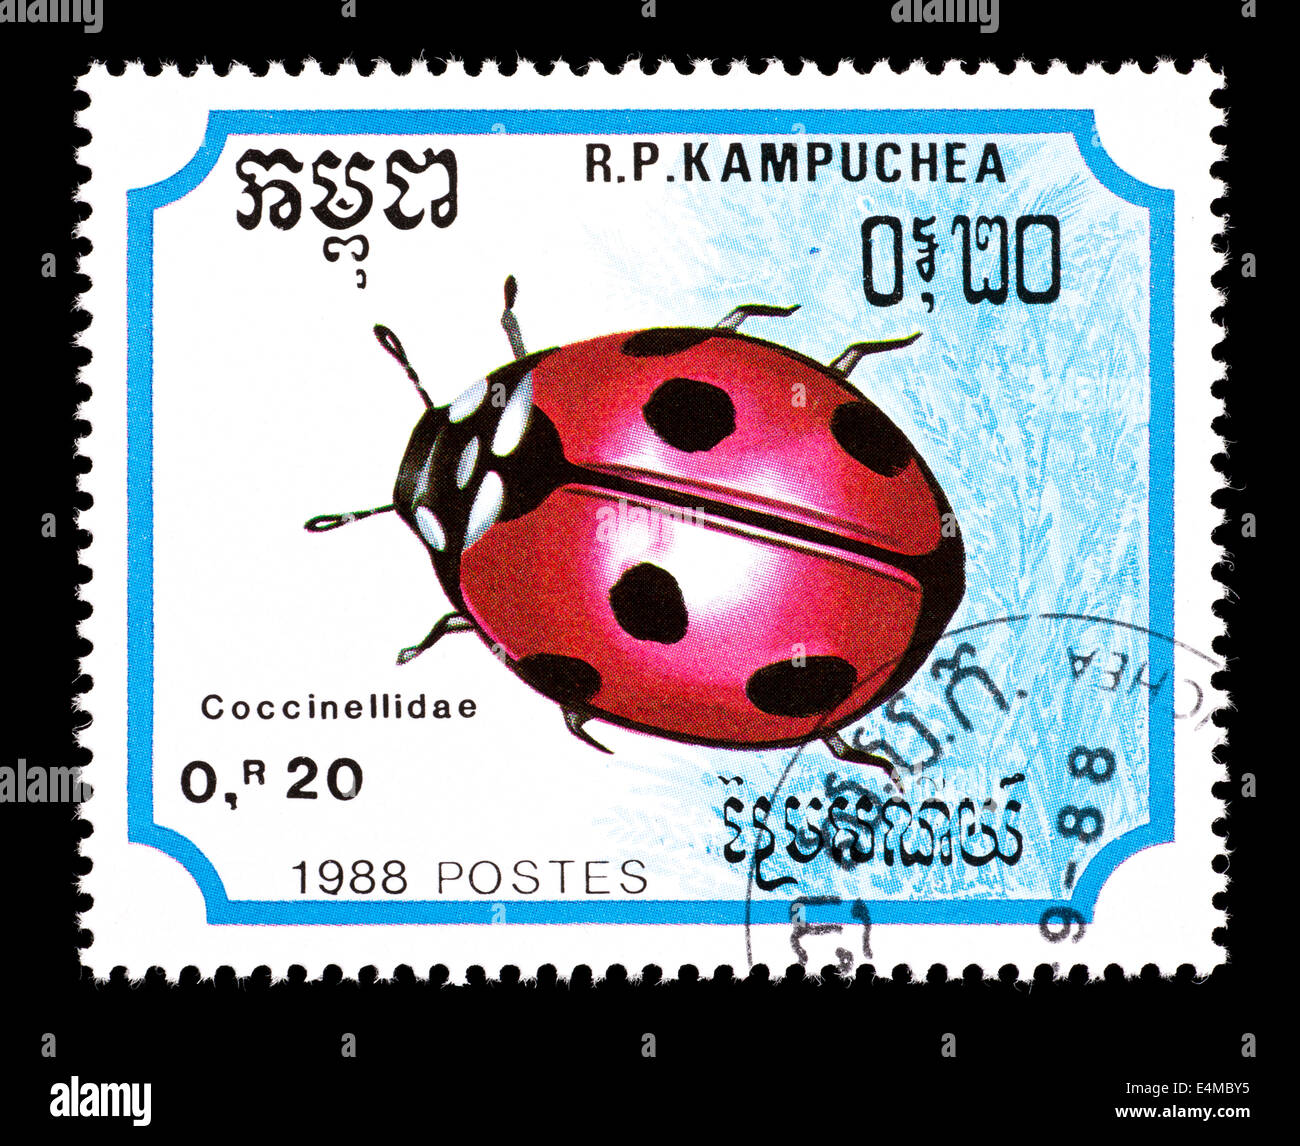 Postage Stamp From Kampuchea Cambodia Depicting A Ladybug Beetle